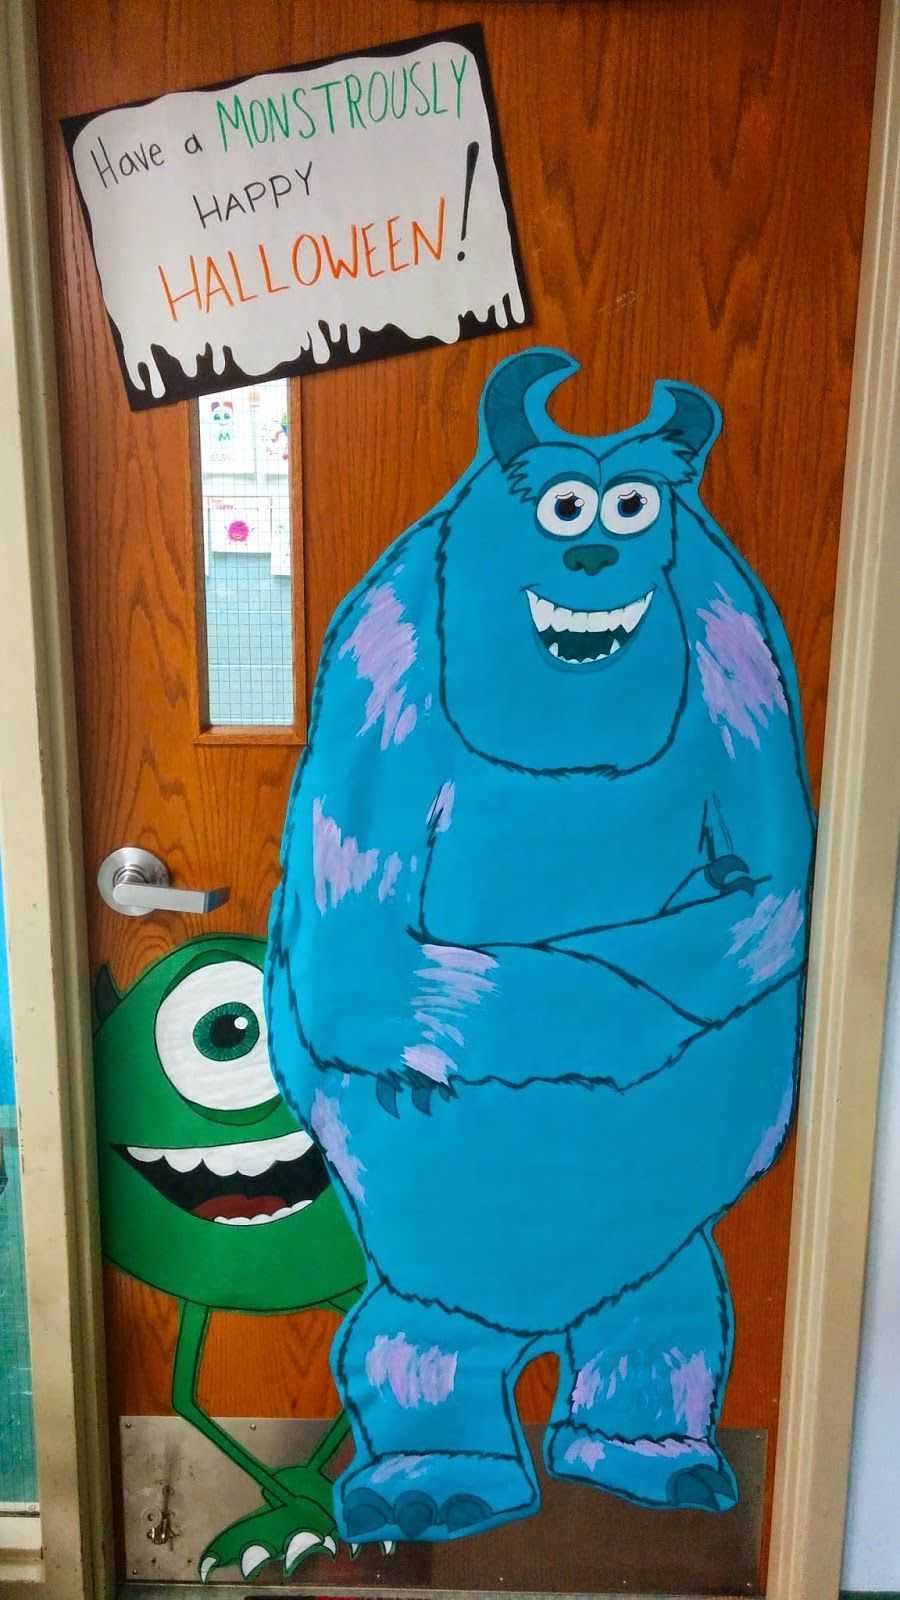 Classroom Halloween door decor, Monsters Inc. for fall or Halloween with Mike Wazowski and Sulley! #halloweenclassroomdoor Classroom Halloween door decor, Monsters Inc. for fall or Halloween with Mike Wazowski and Sulley! #falldoordecorationsclassroom